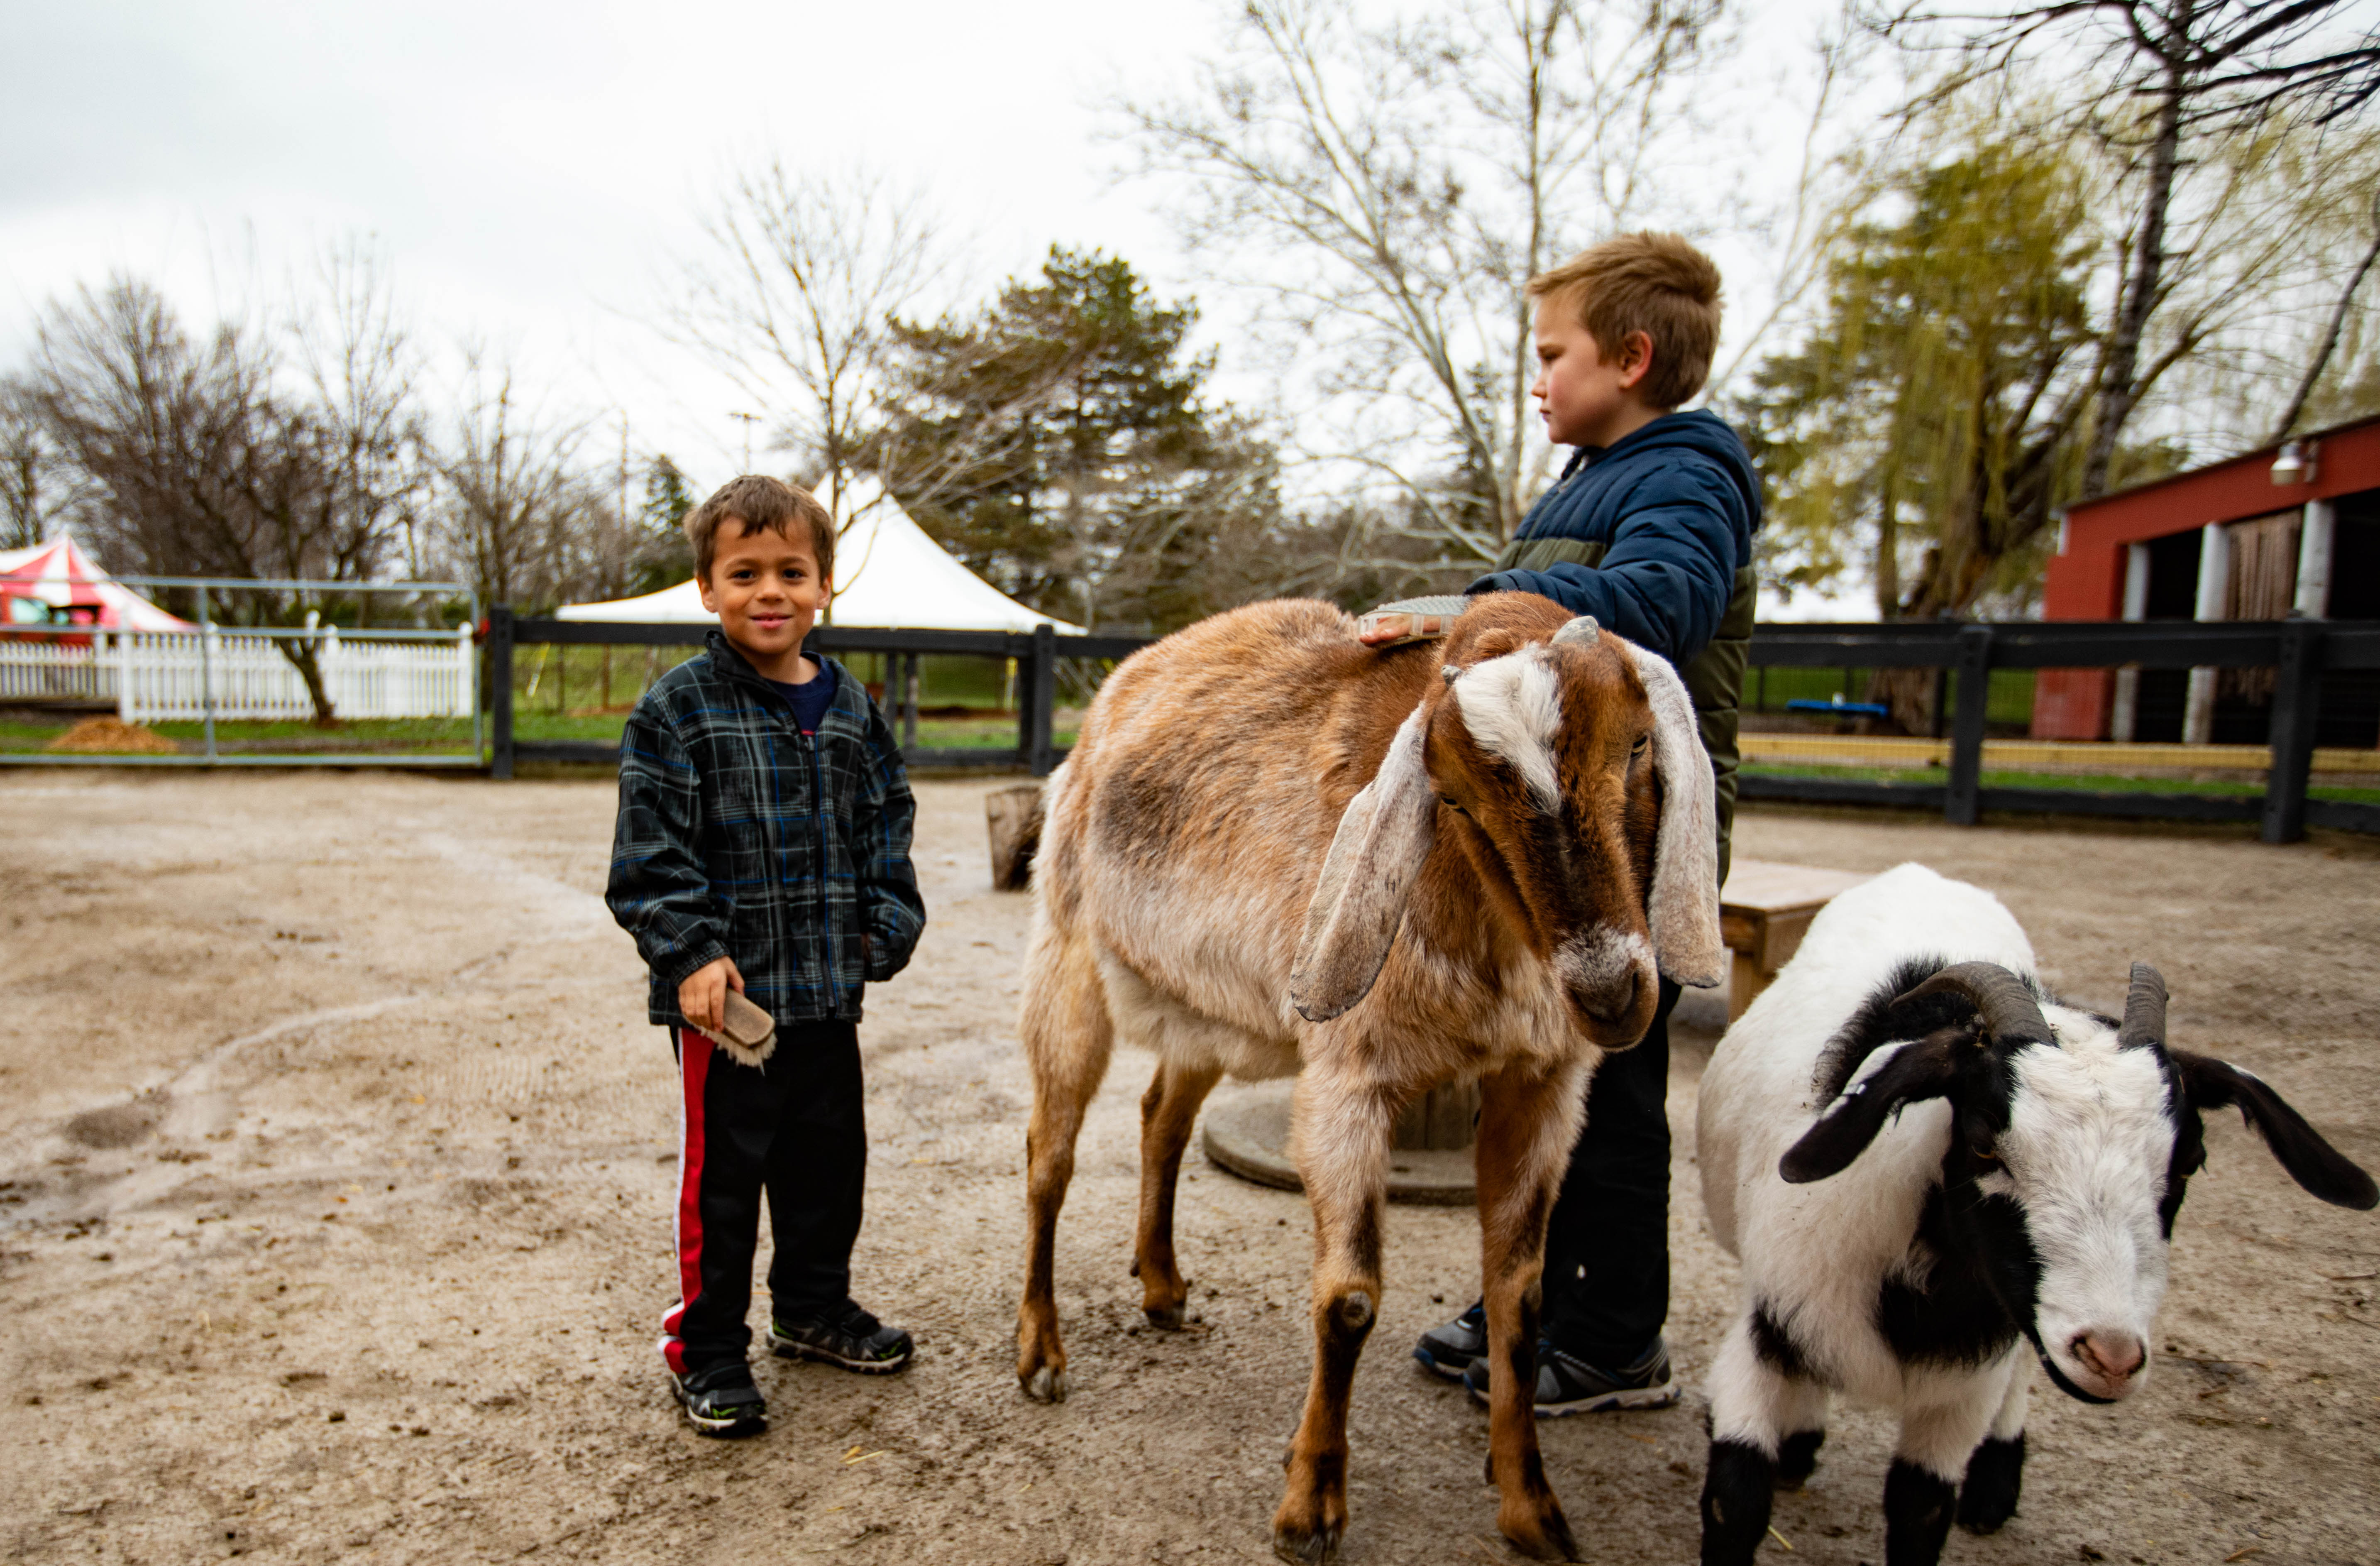 Saginaw Children's Zoo offers free admission on opening day if you bring this item to recycle